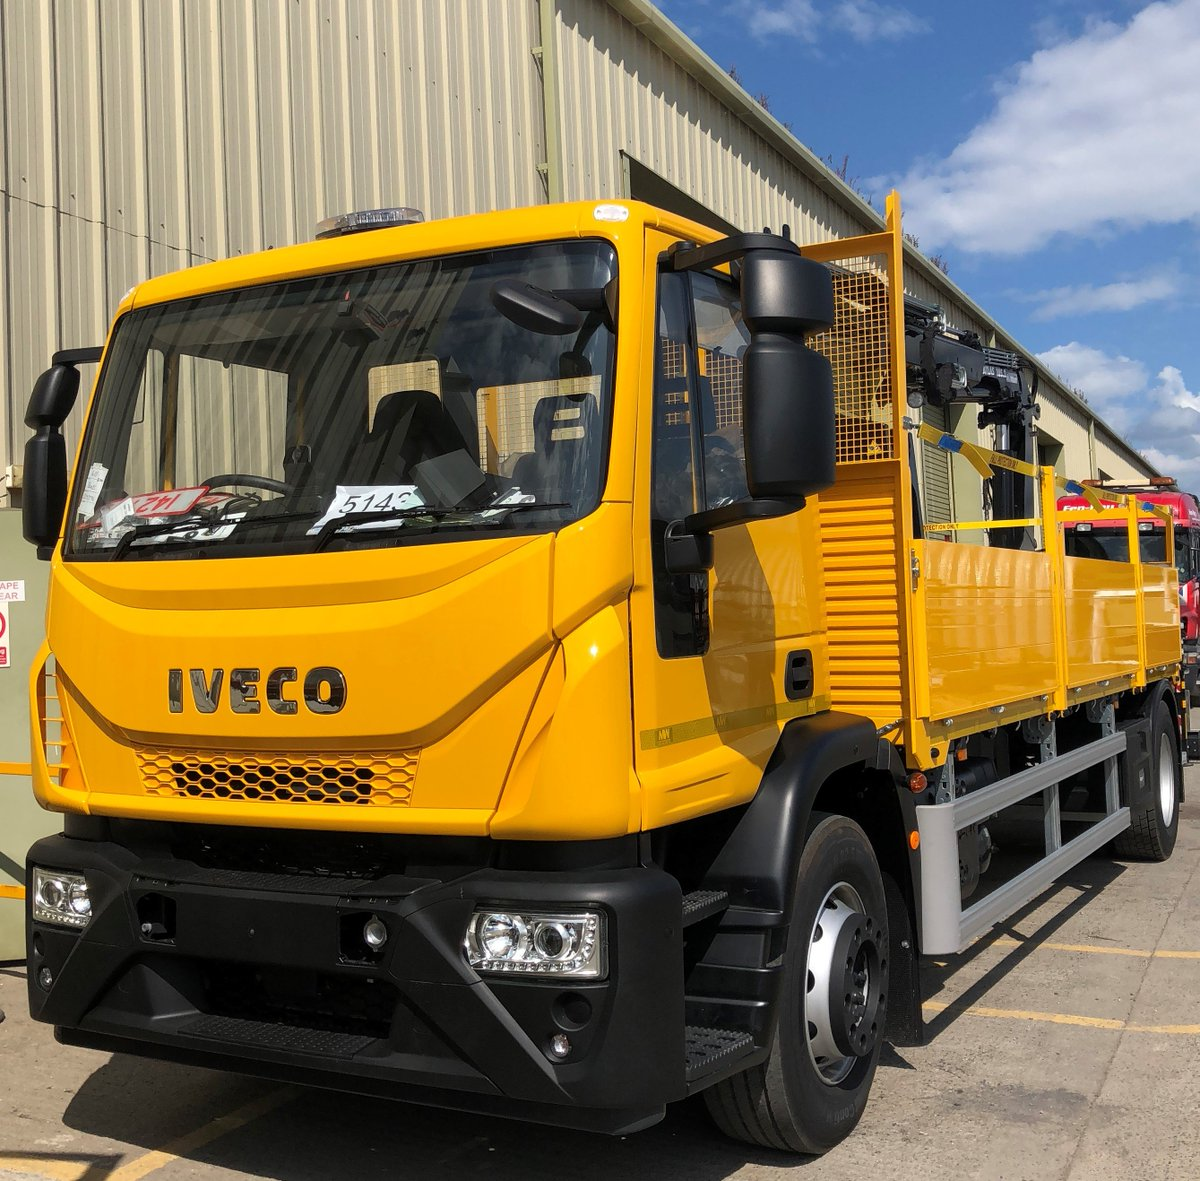 test Twitter Media - 18t Iveco Eurocargo Dropsider for @mkmbs   Thanks to @NETVLtd   @IVECOUK #Iveco #Eurocargo #Dropsider #MWHull #KeepingBritainMoving https://t.co/djsJnDZvs0